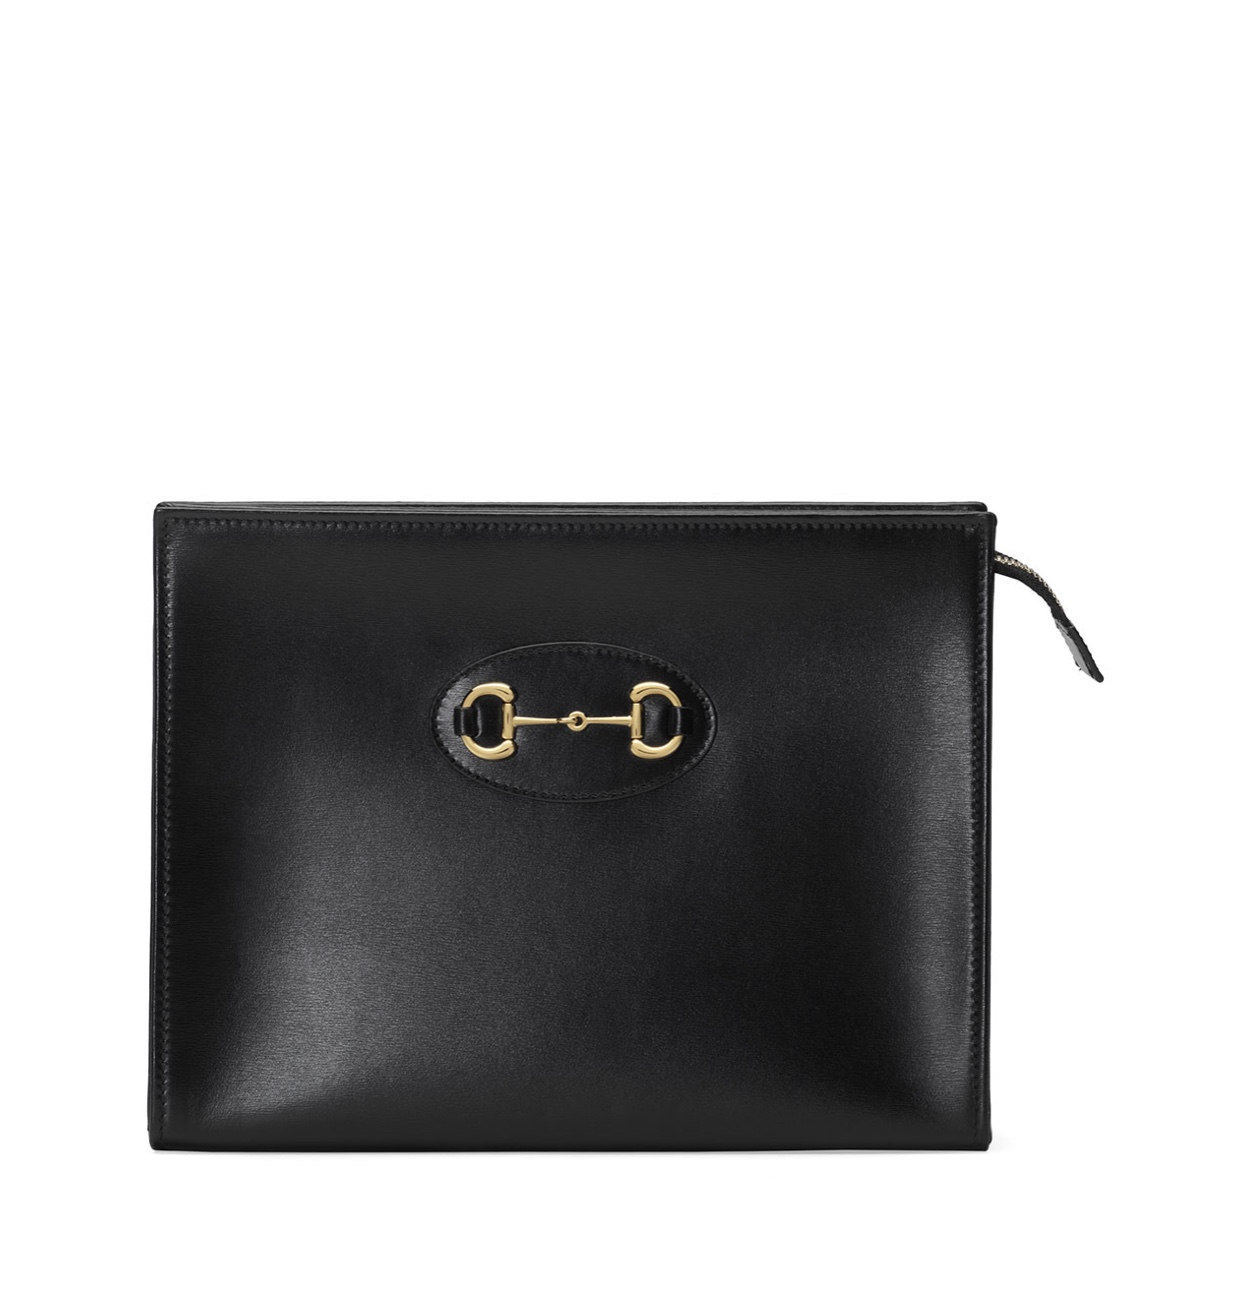 GUCCI 1955 Horsebit leather pouch clutch bag